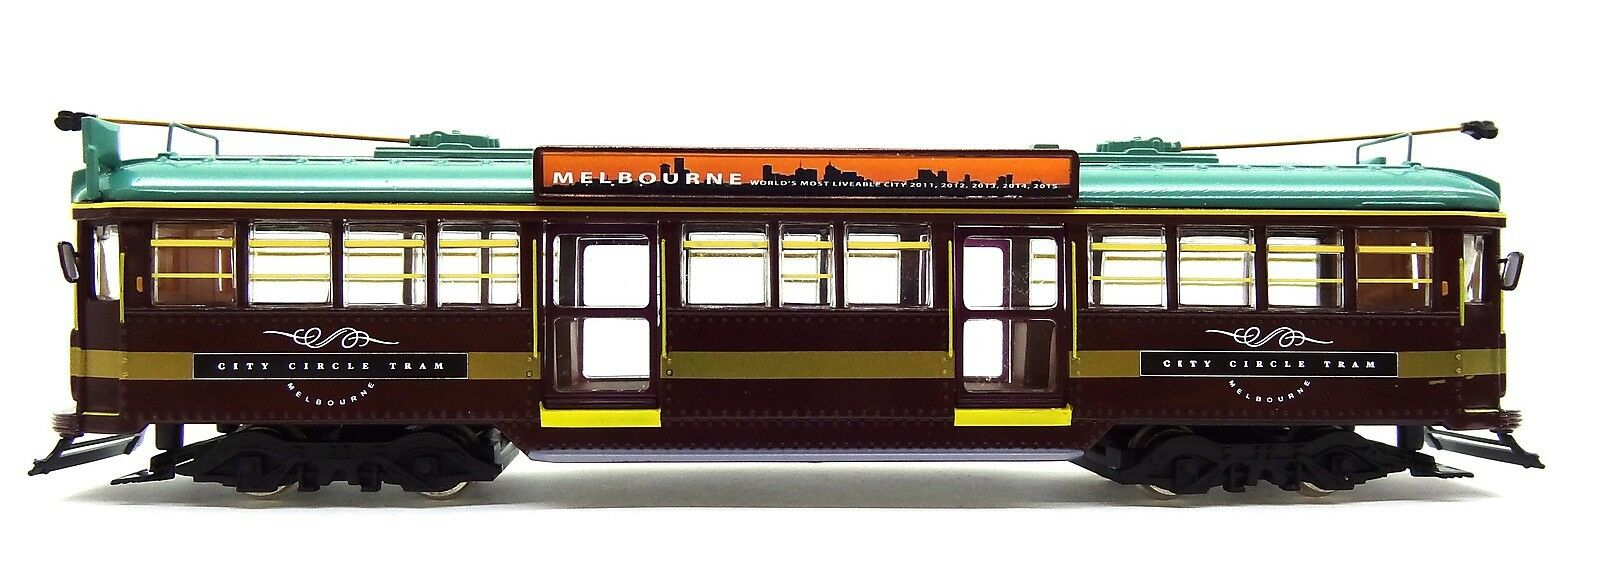 1 76 SCALE MELBOURNE W6 CLASS TRAM - CITY CIRCLE NO. 888